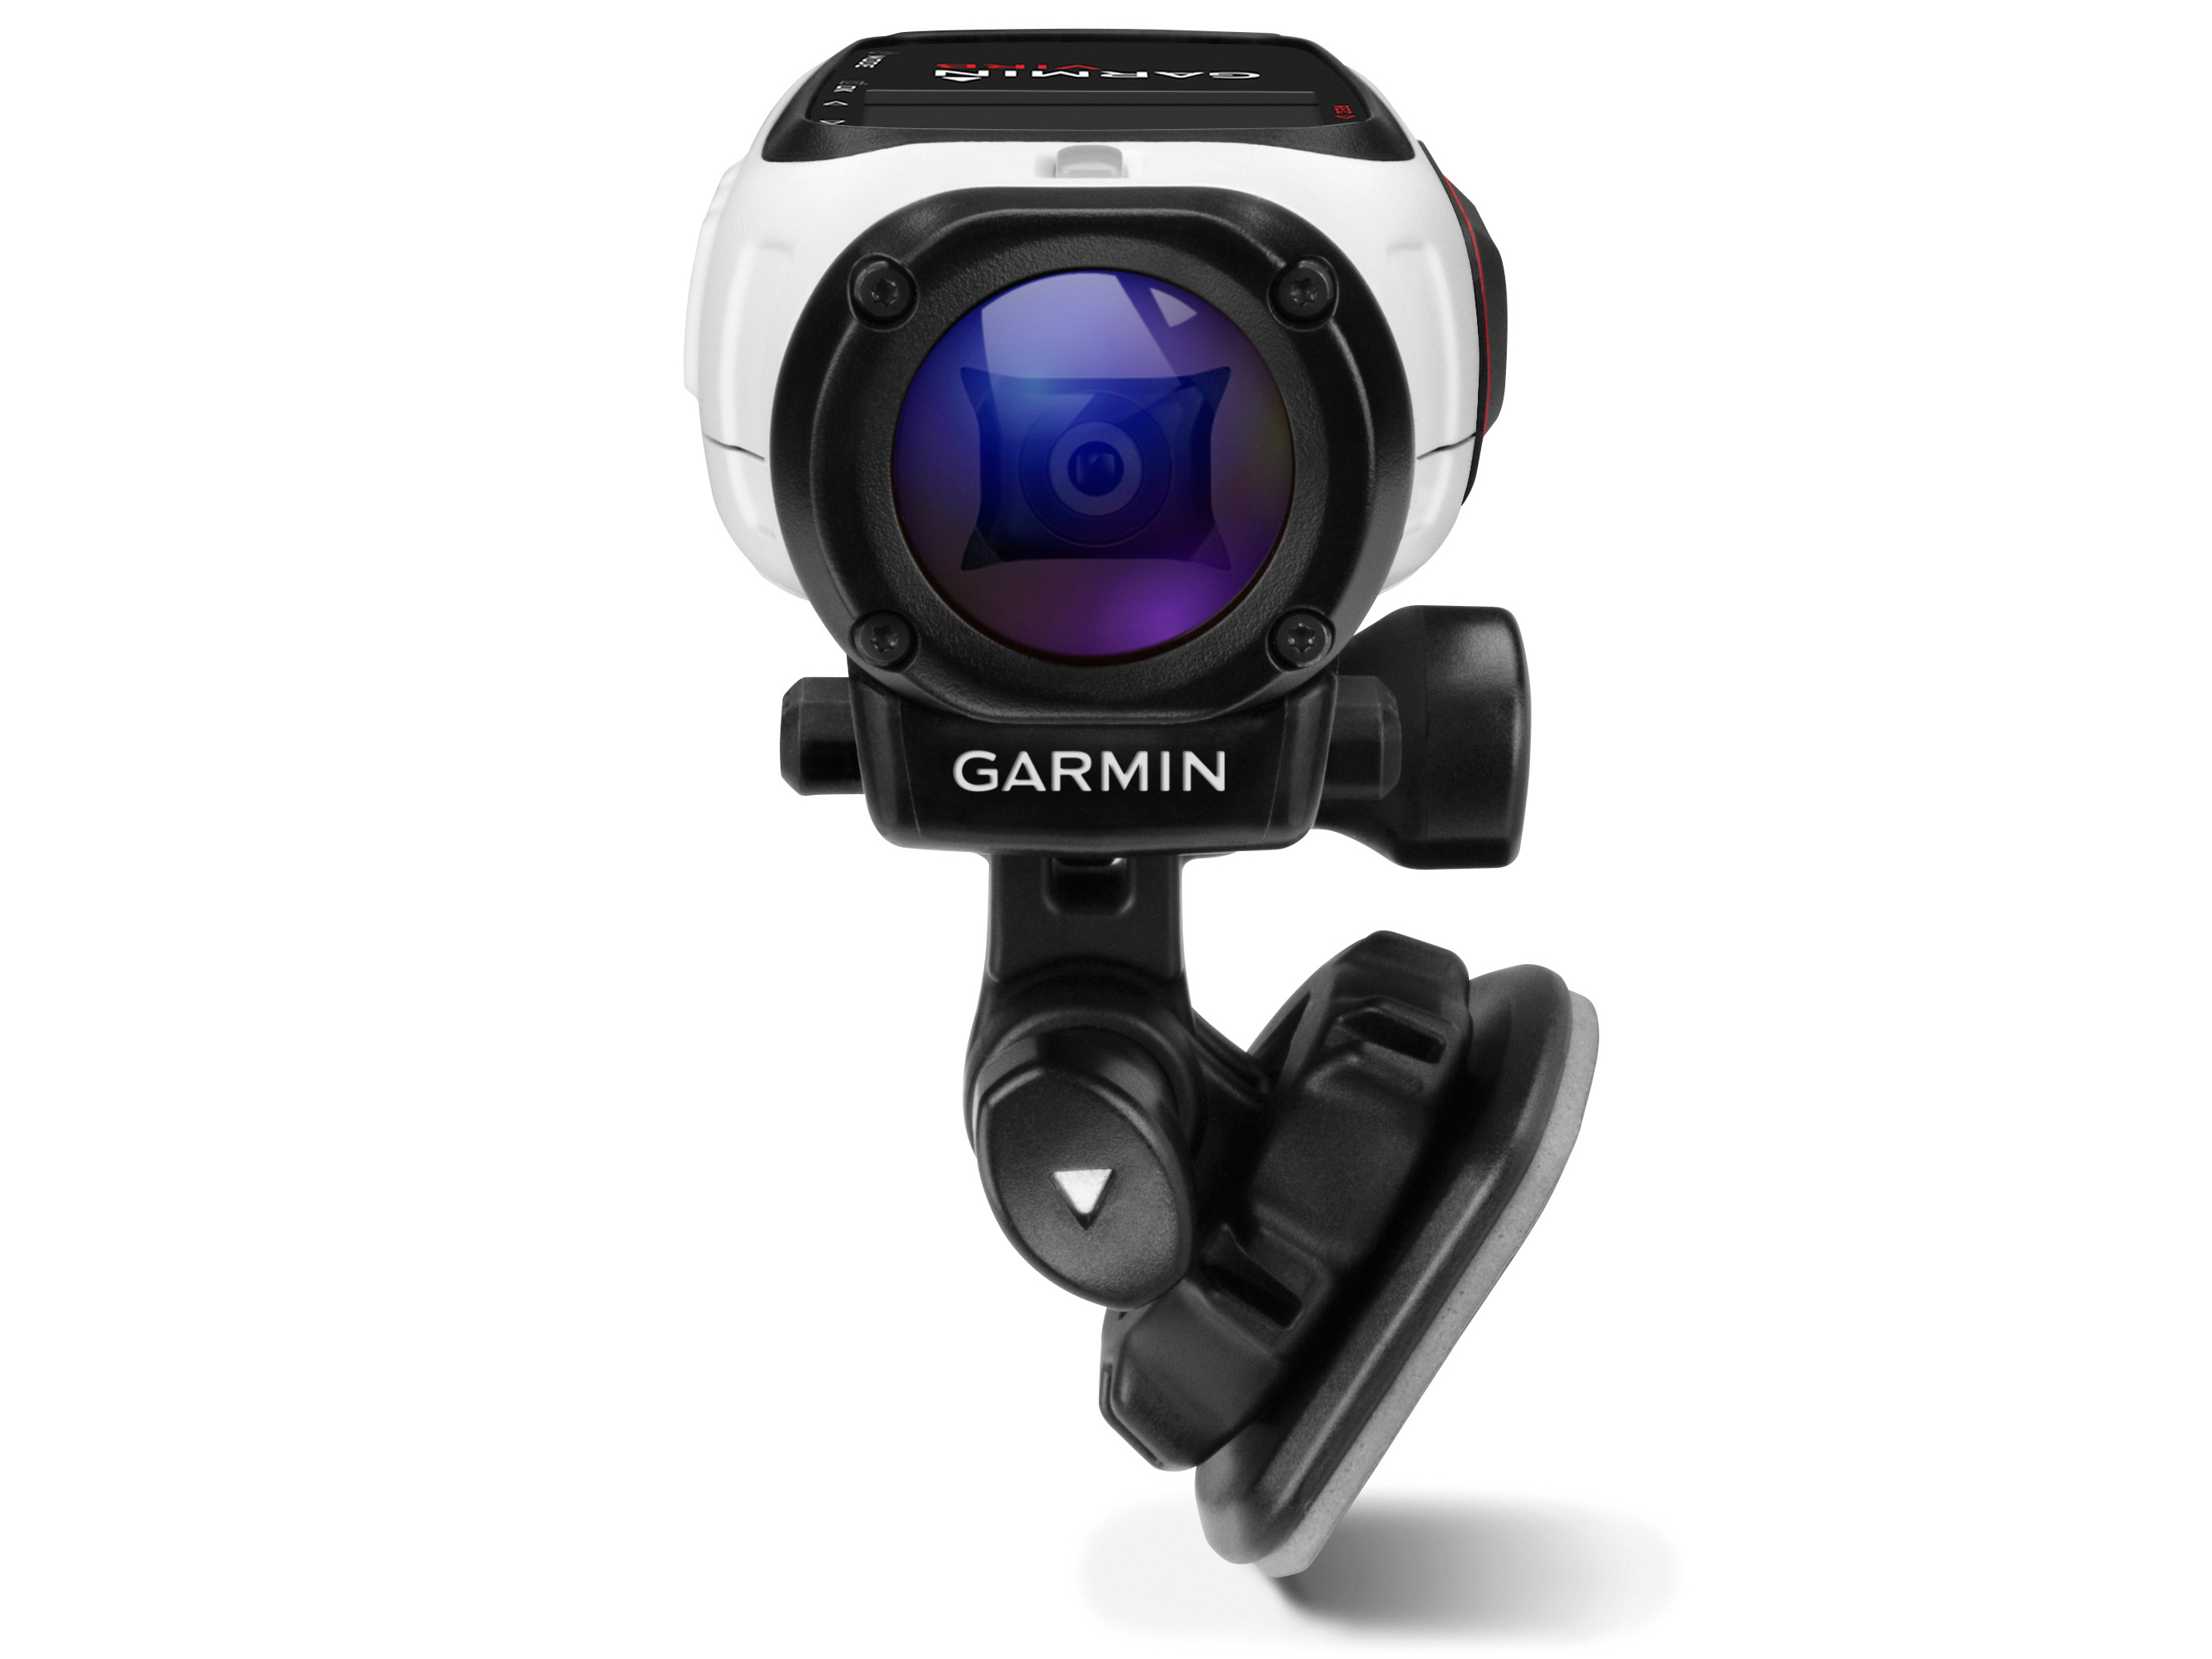 Garmin takes on GoPro with VIRB and VIRB Elite action